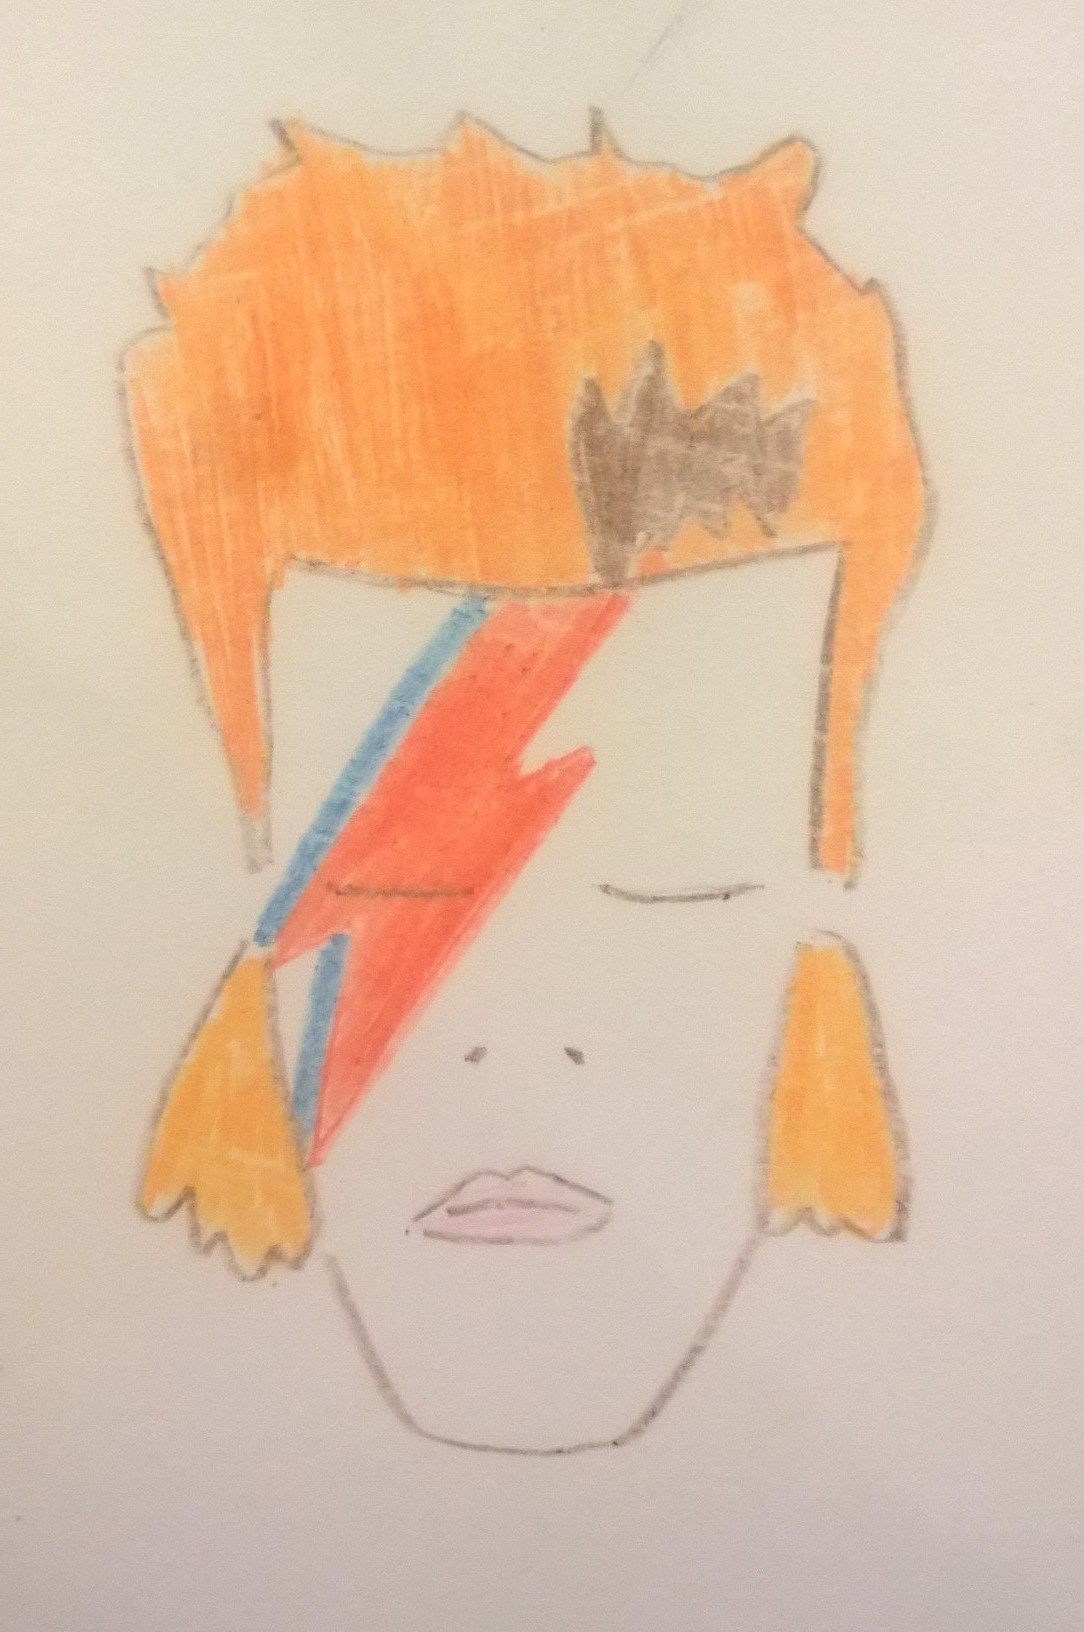 A Thank You Letter To David Bowie From A Palliative Care Doctor